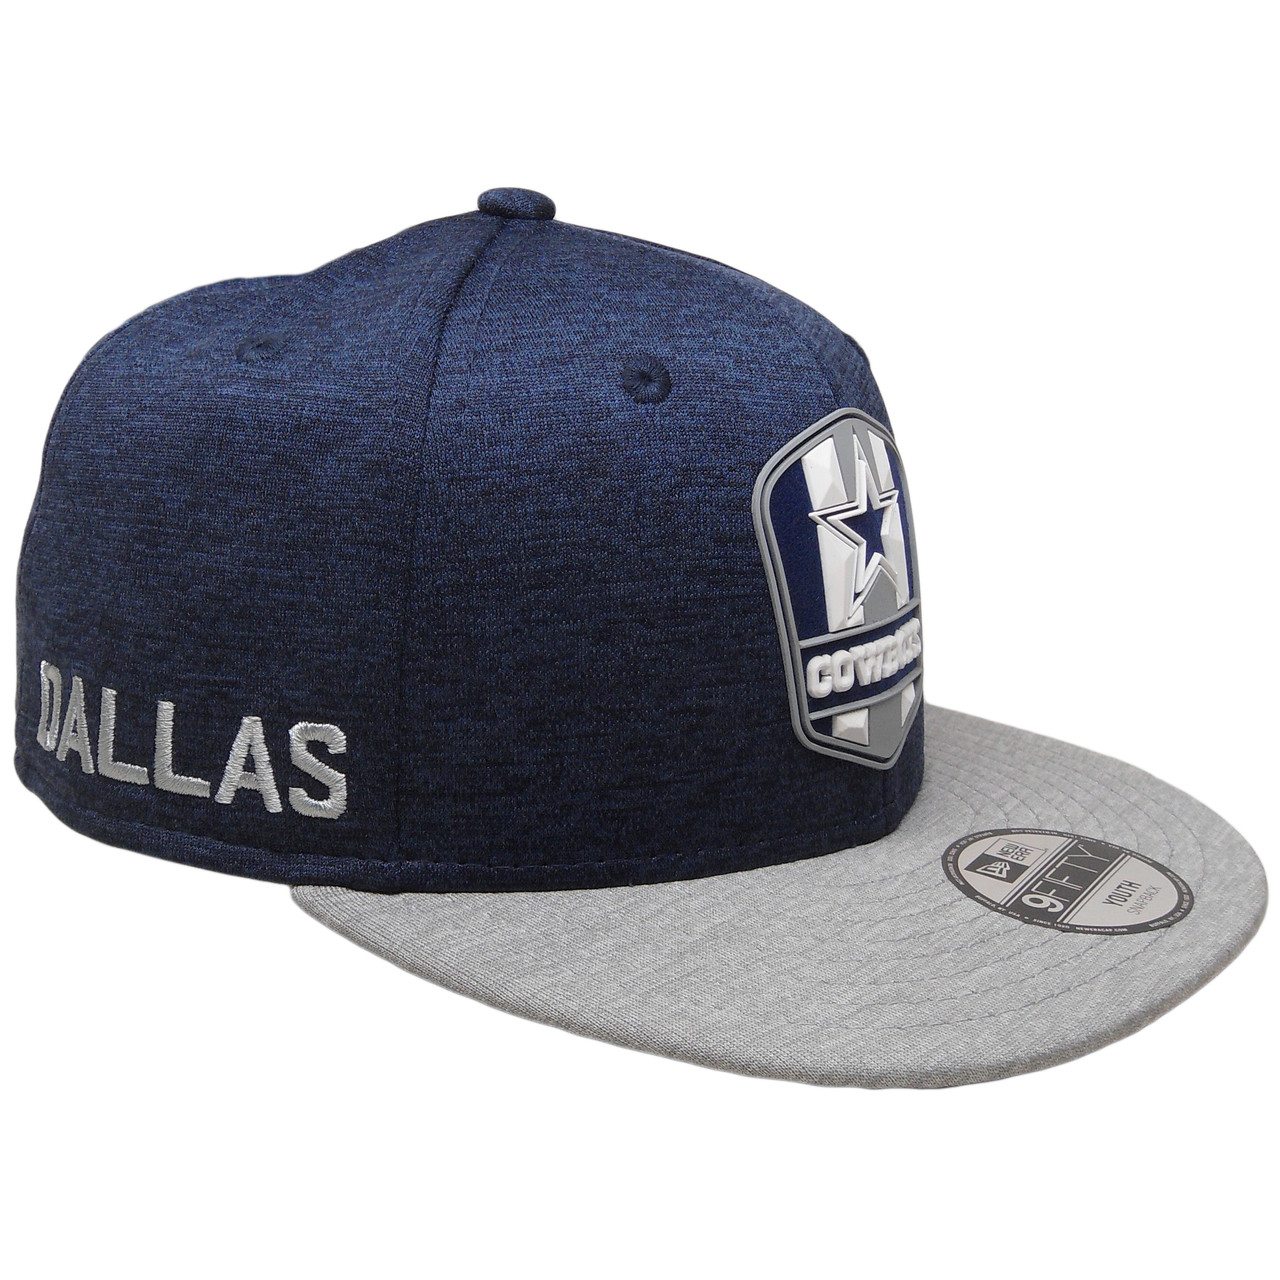 best cheap 840bf faf5d Dallas Cowboys New Era 2018 Onfield 9Fifty KIDS Snapback - Navy, Gray,  White - ECapsUnlimited.com